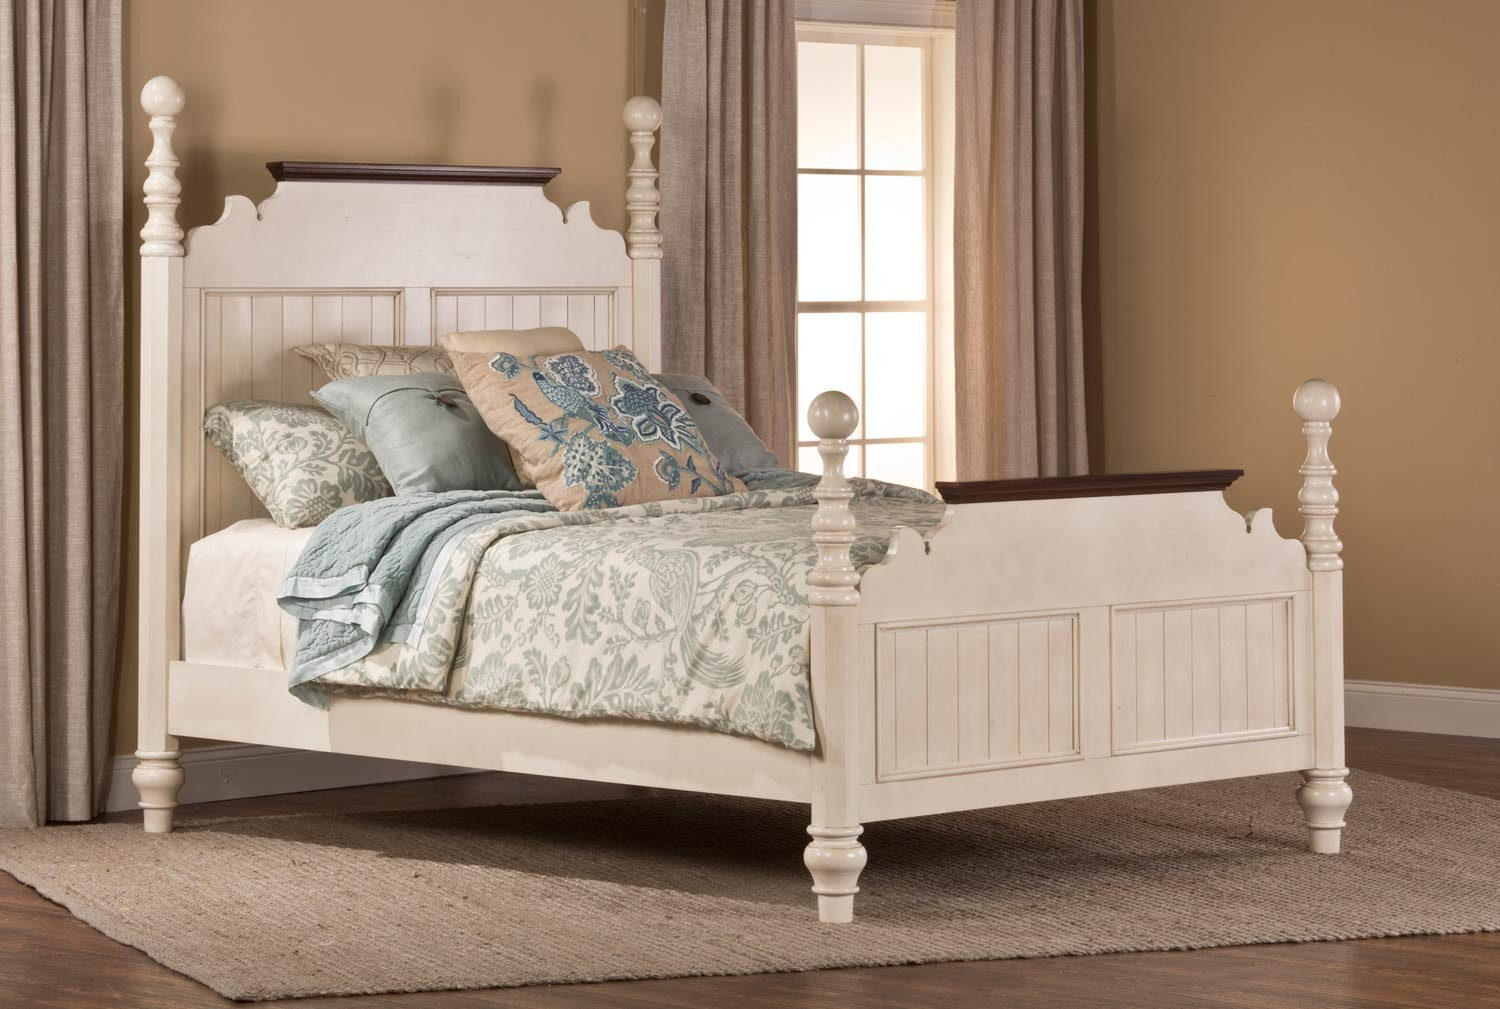 Hillsdale Pine Island Post King Size Bed - Old White